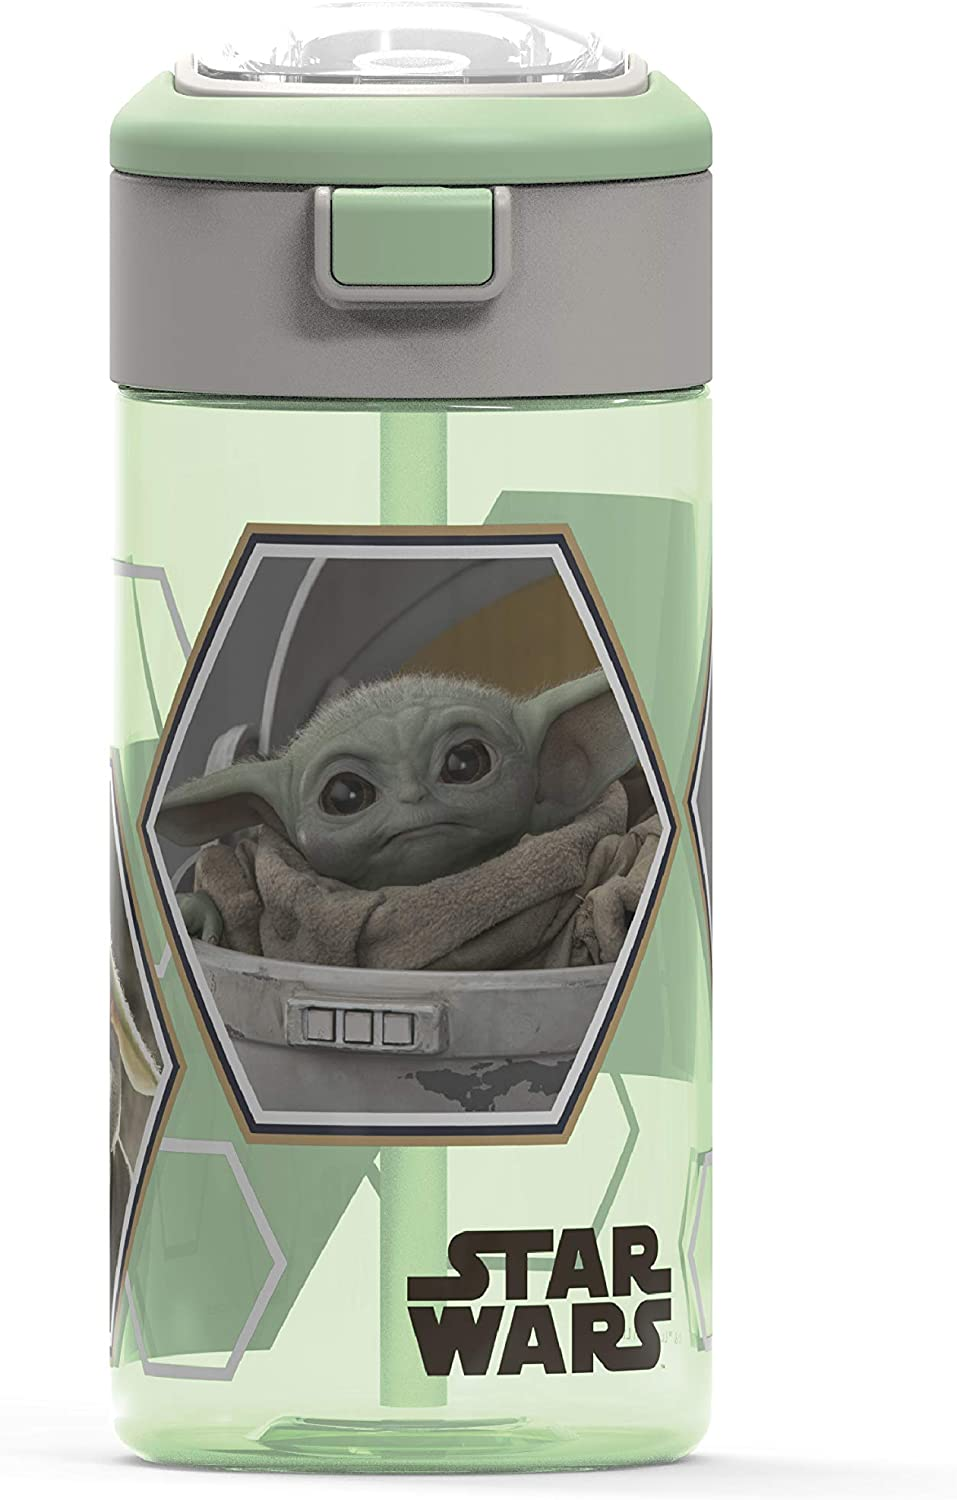 Zak Designs Star Wars The Mandalorian Durable Plastic Water Bottle with Interchangeable Lid and Built-In Carry Handle, Non-BPA, Leak-Proof Design is Perfect for Outdoor Sports (The Child, 18oz, 1PC)